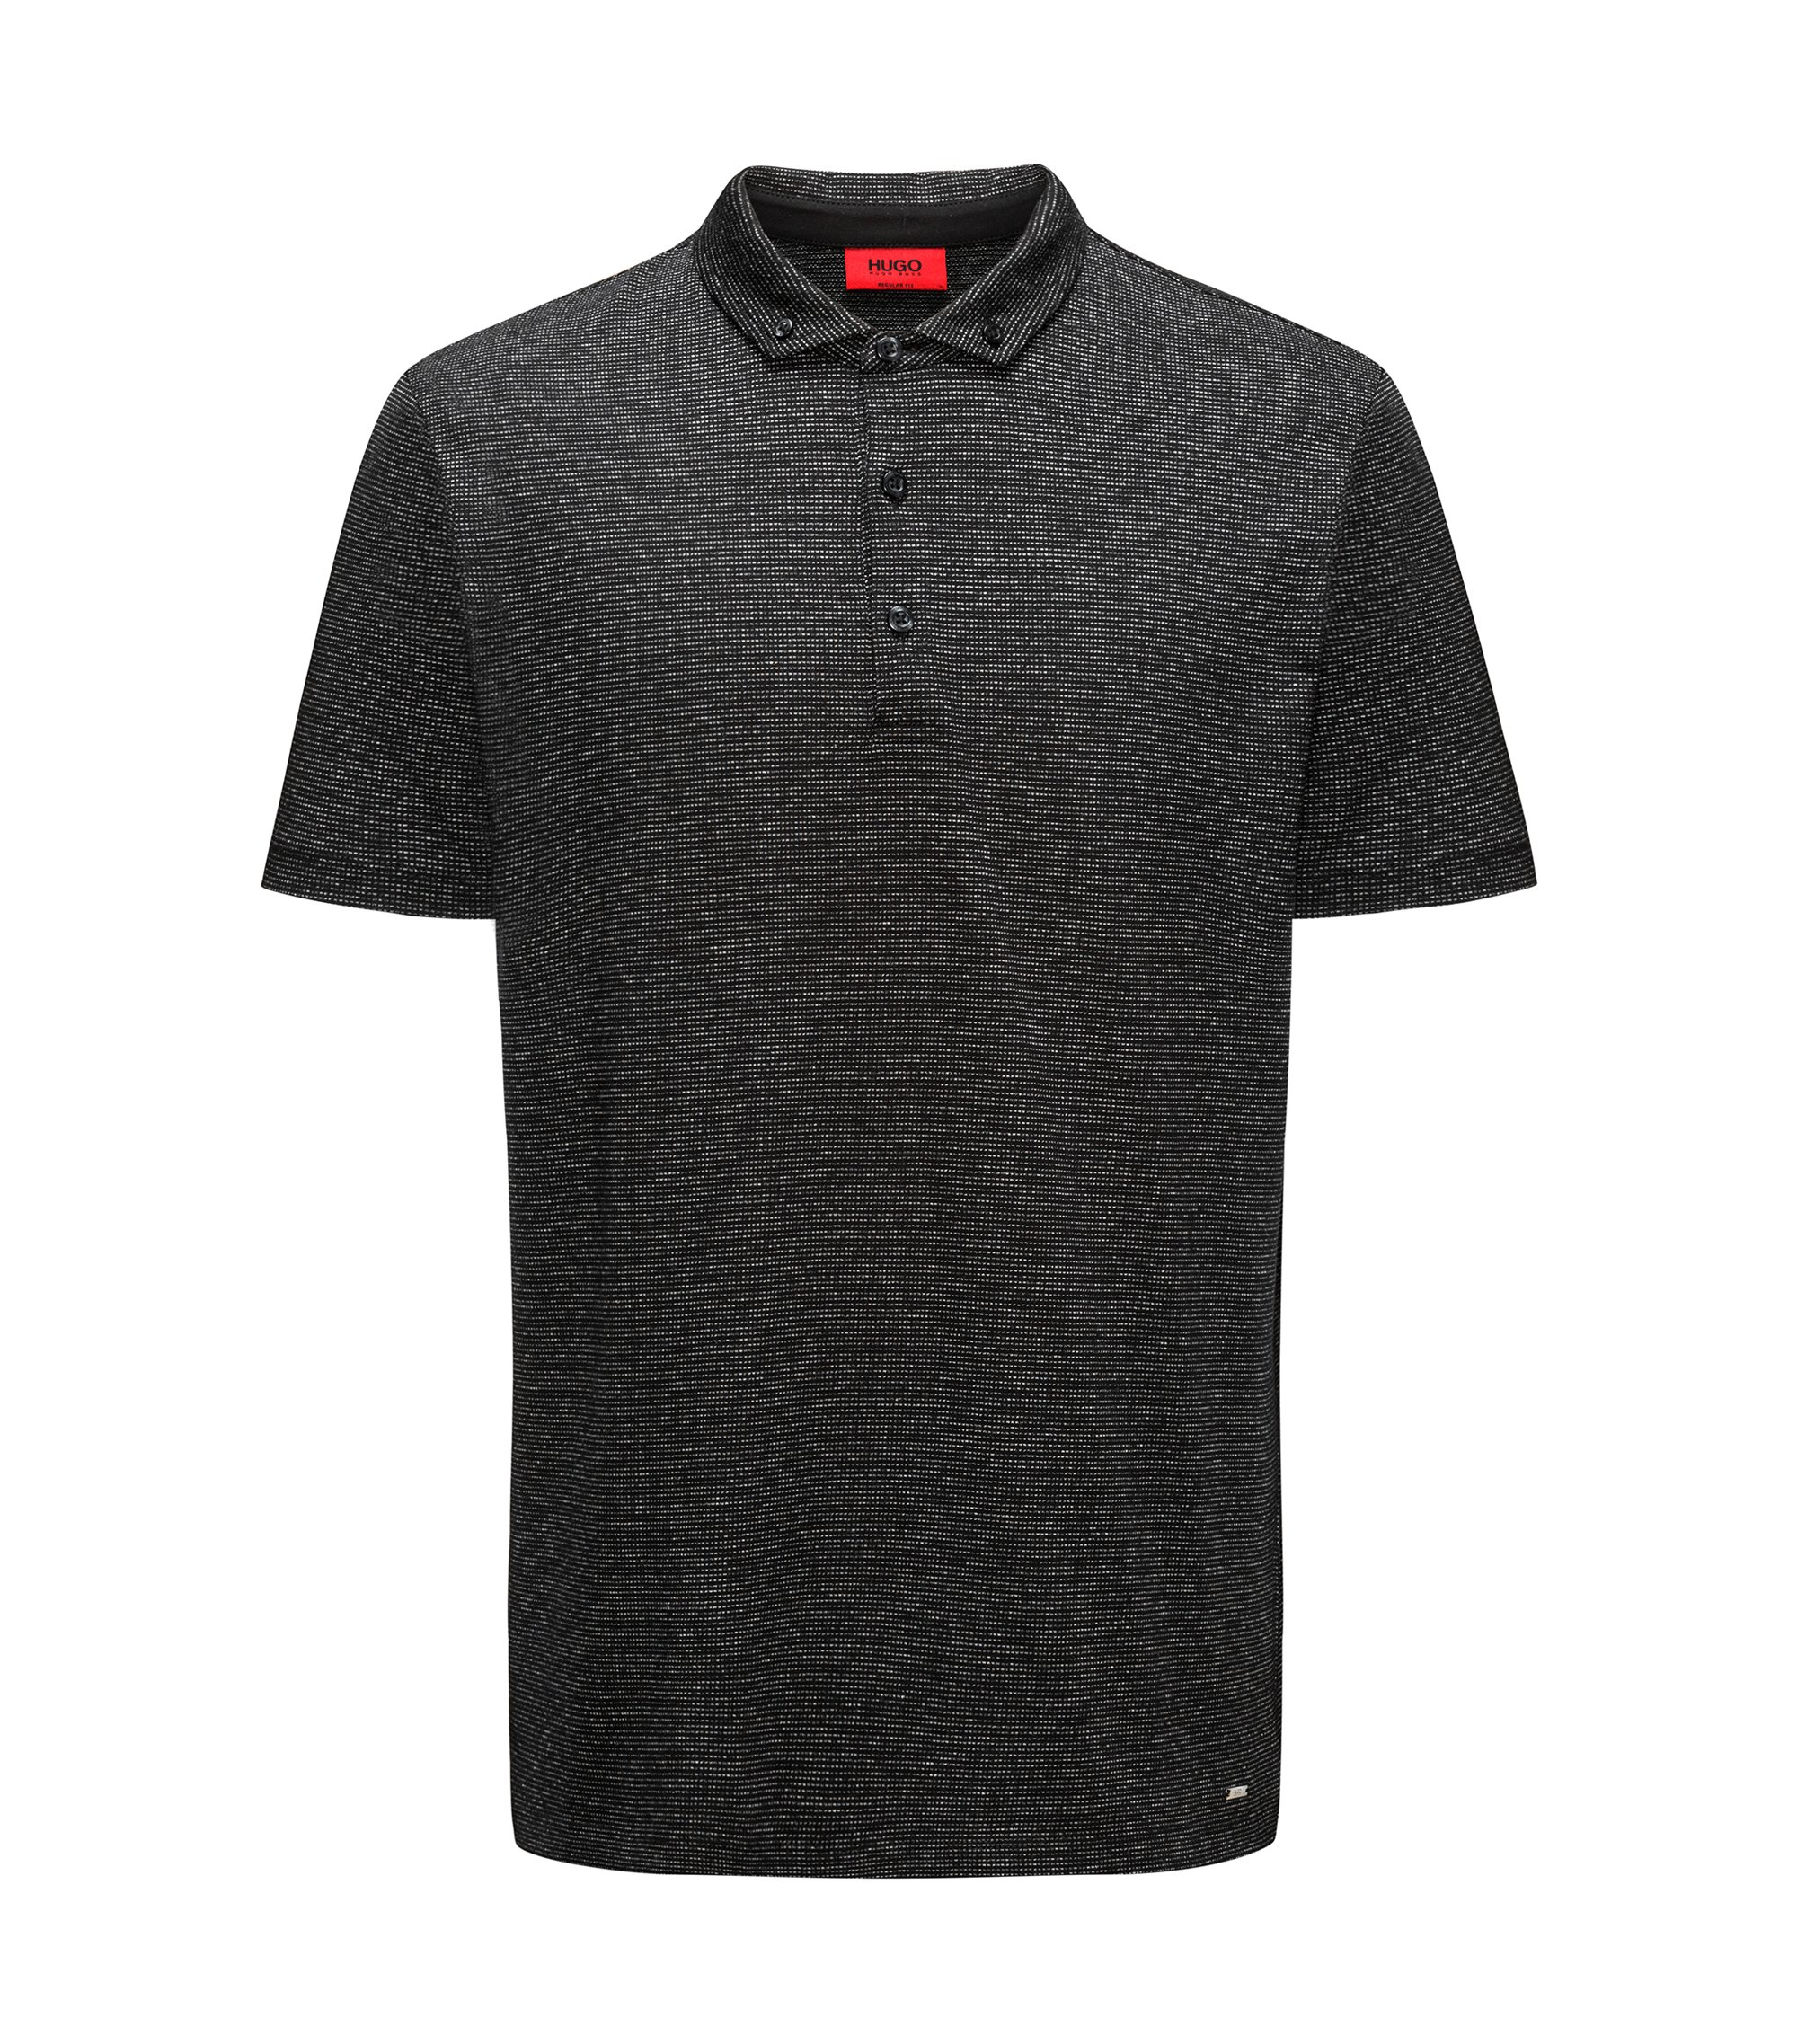 Cotton Blend Polo Shirt, Regular Fit | Deleton, Black